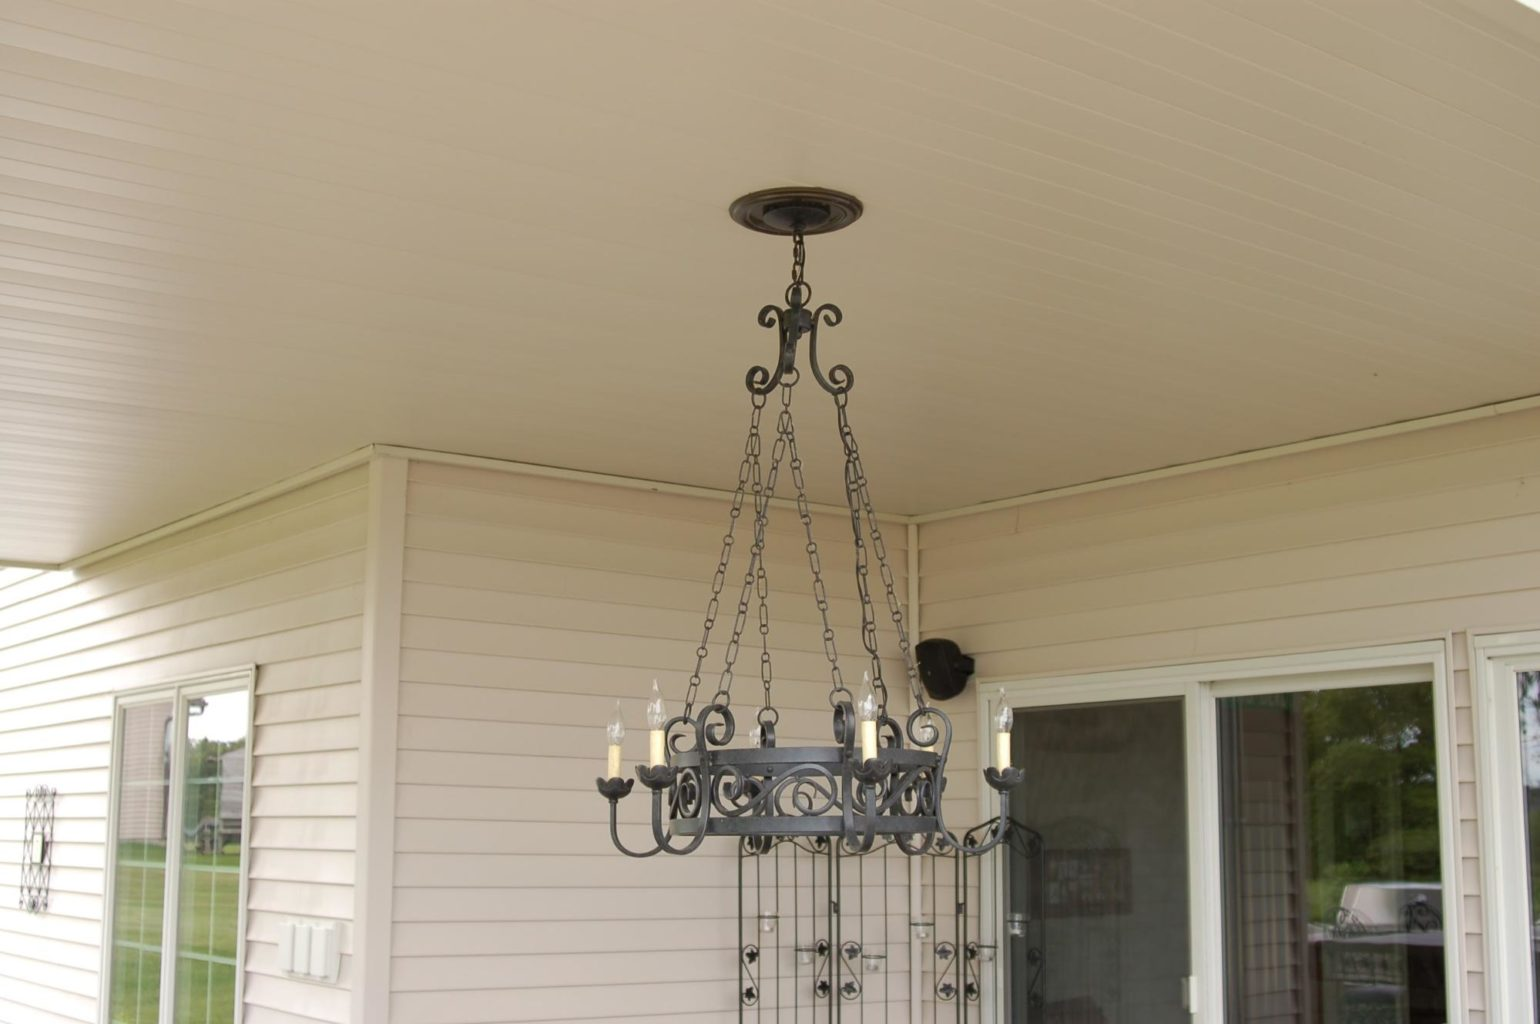 Haning chandelier on finished Comfort Zone deck